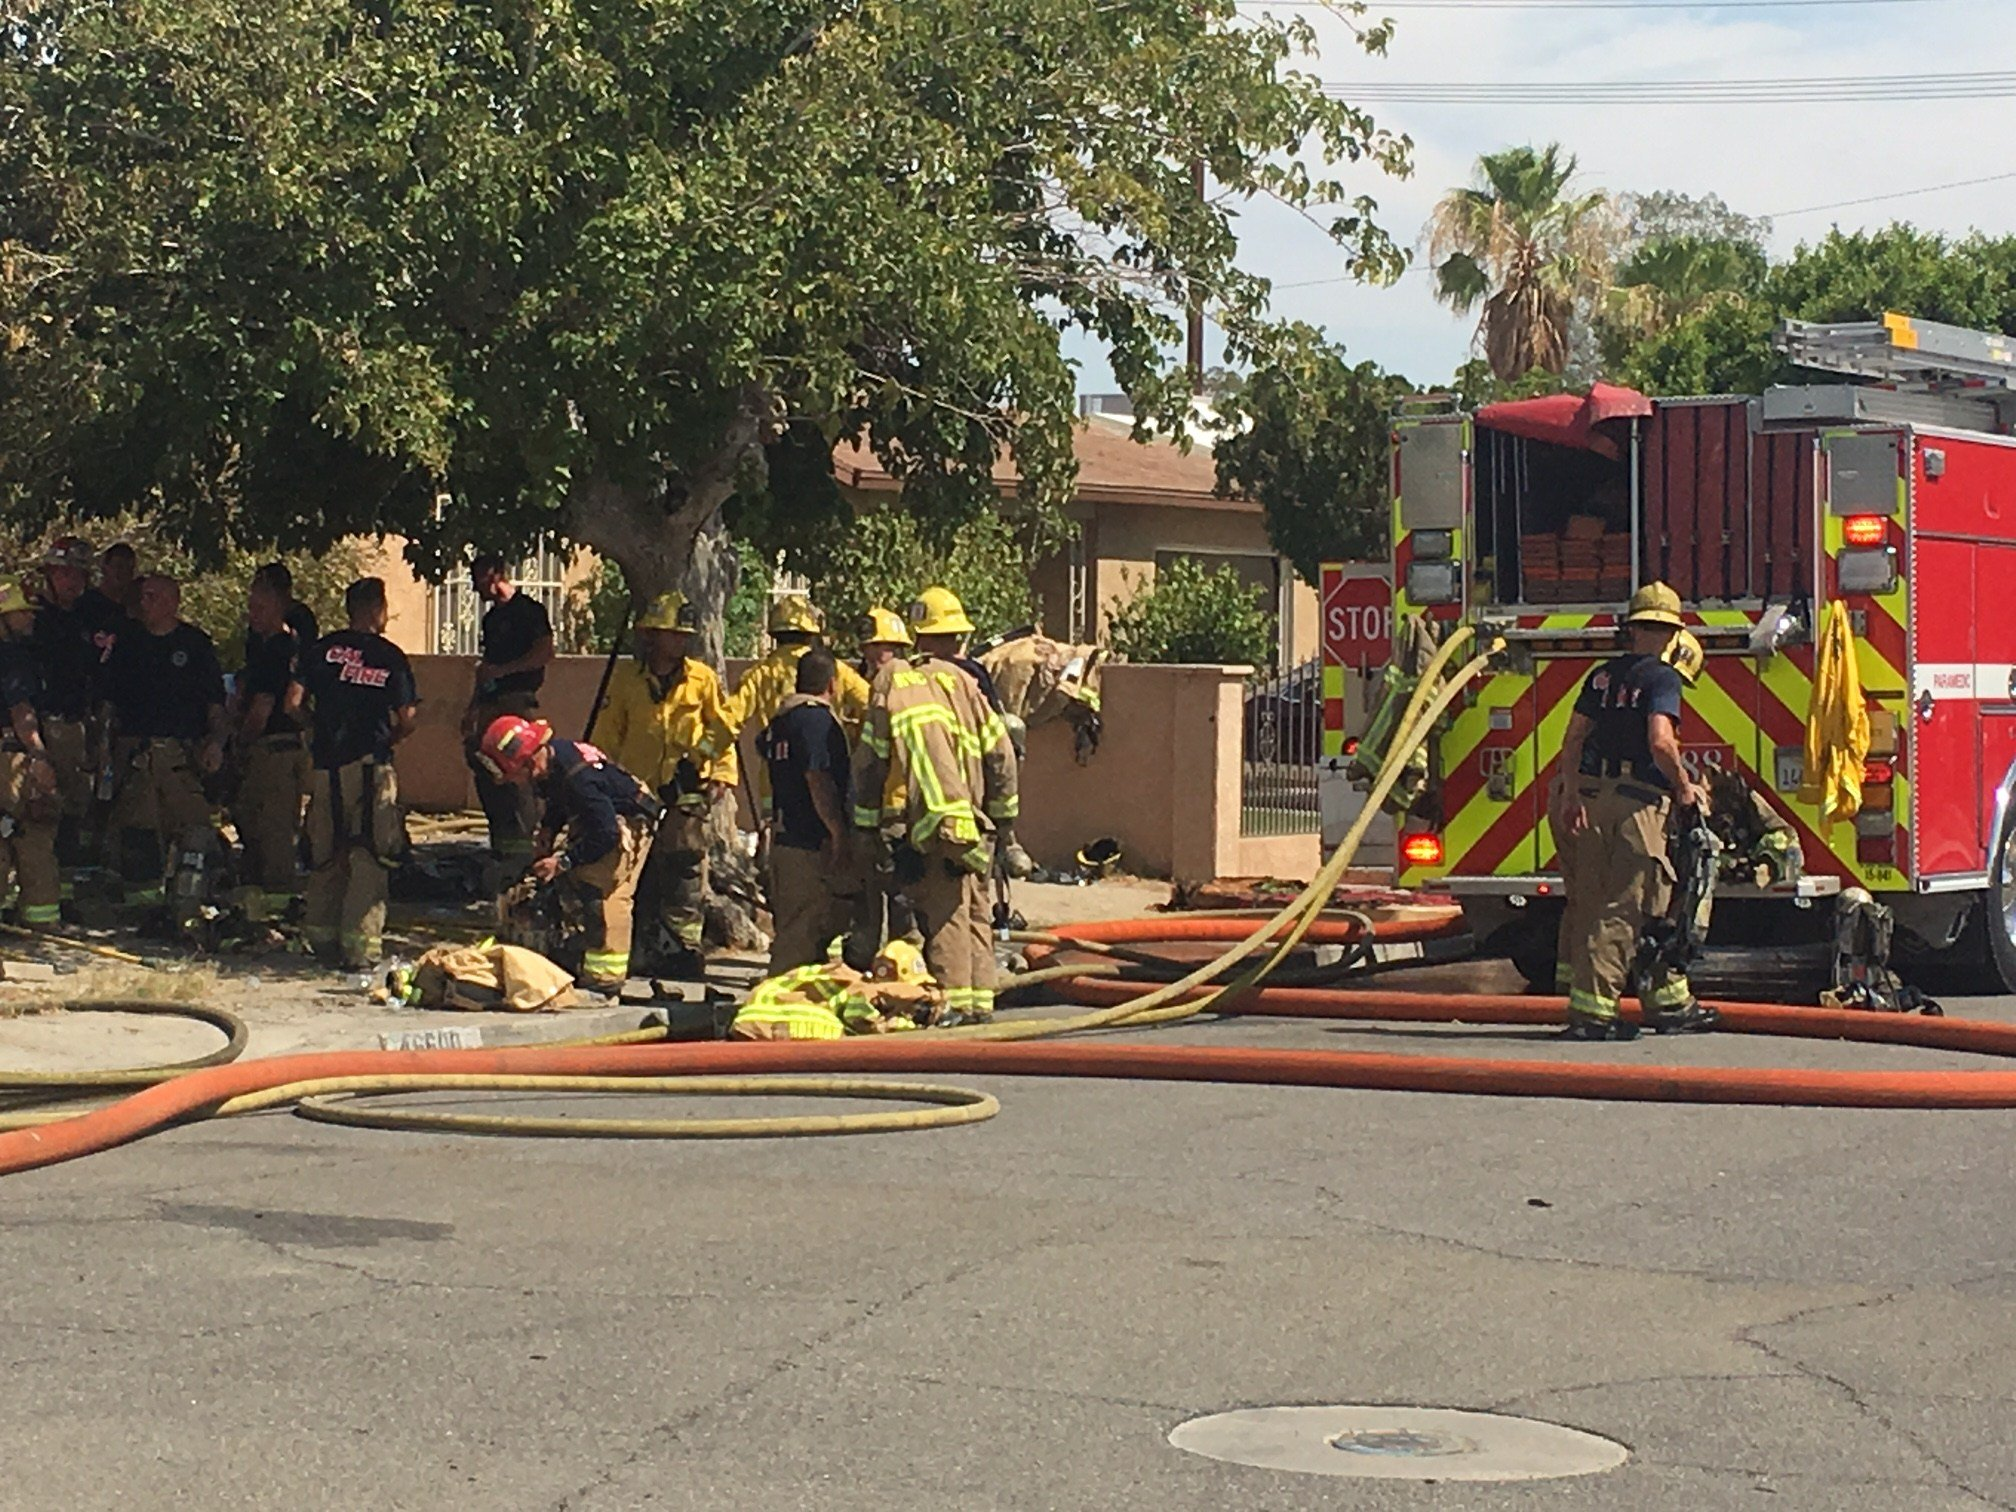 More than 3 dozen firefighters responded to the vacant home to battle the fire.